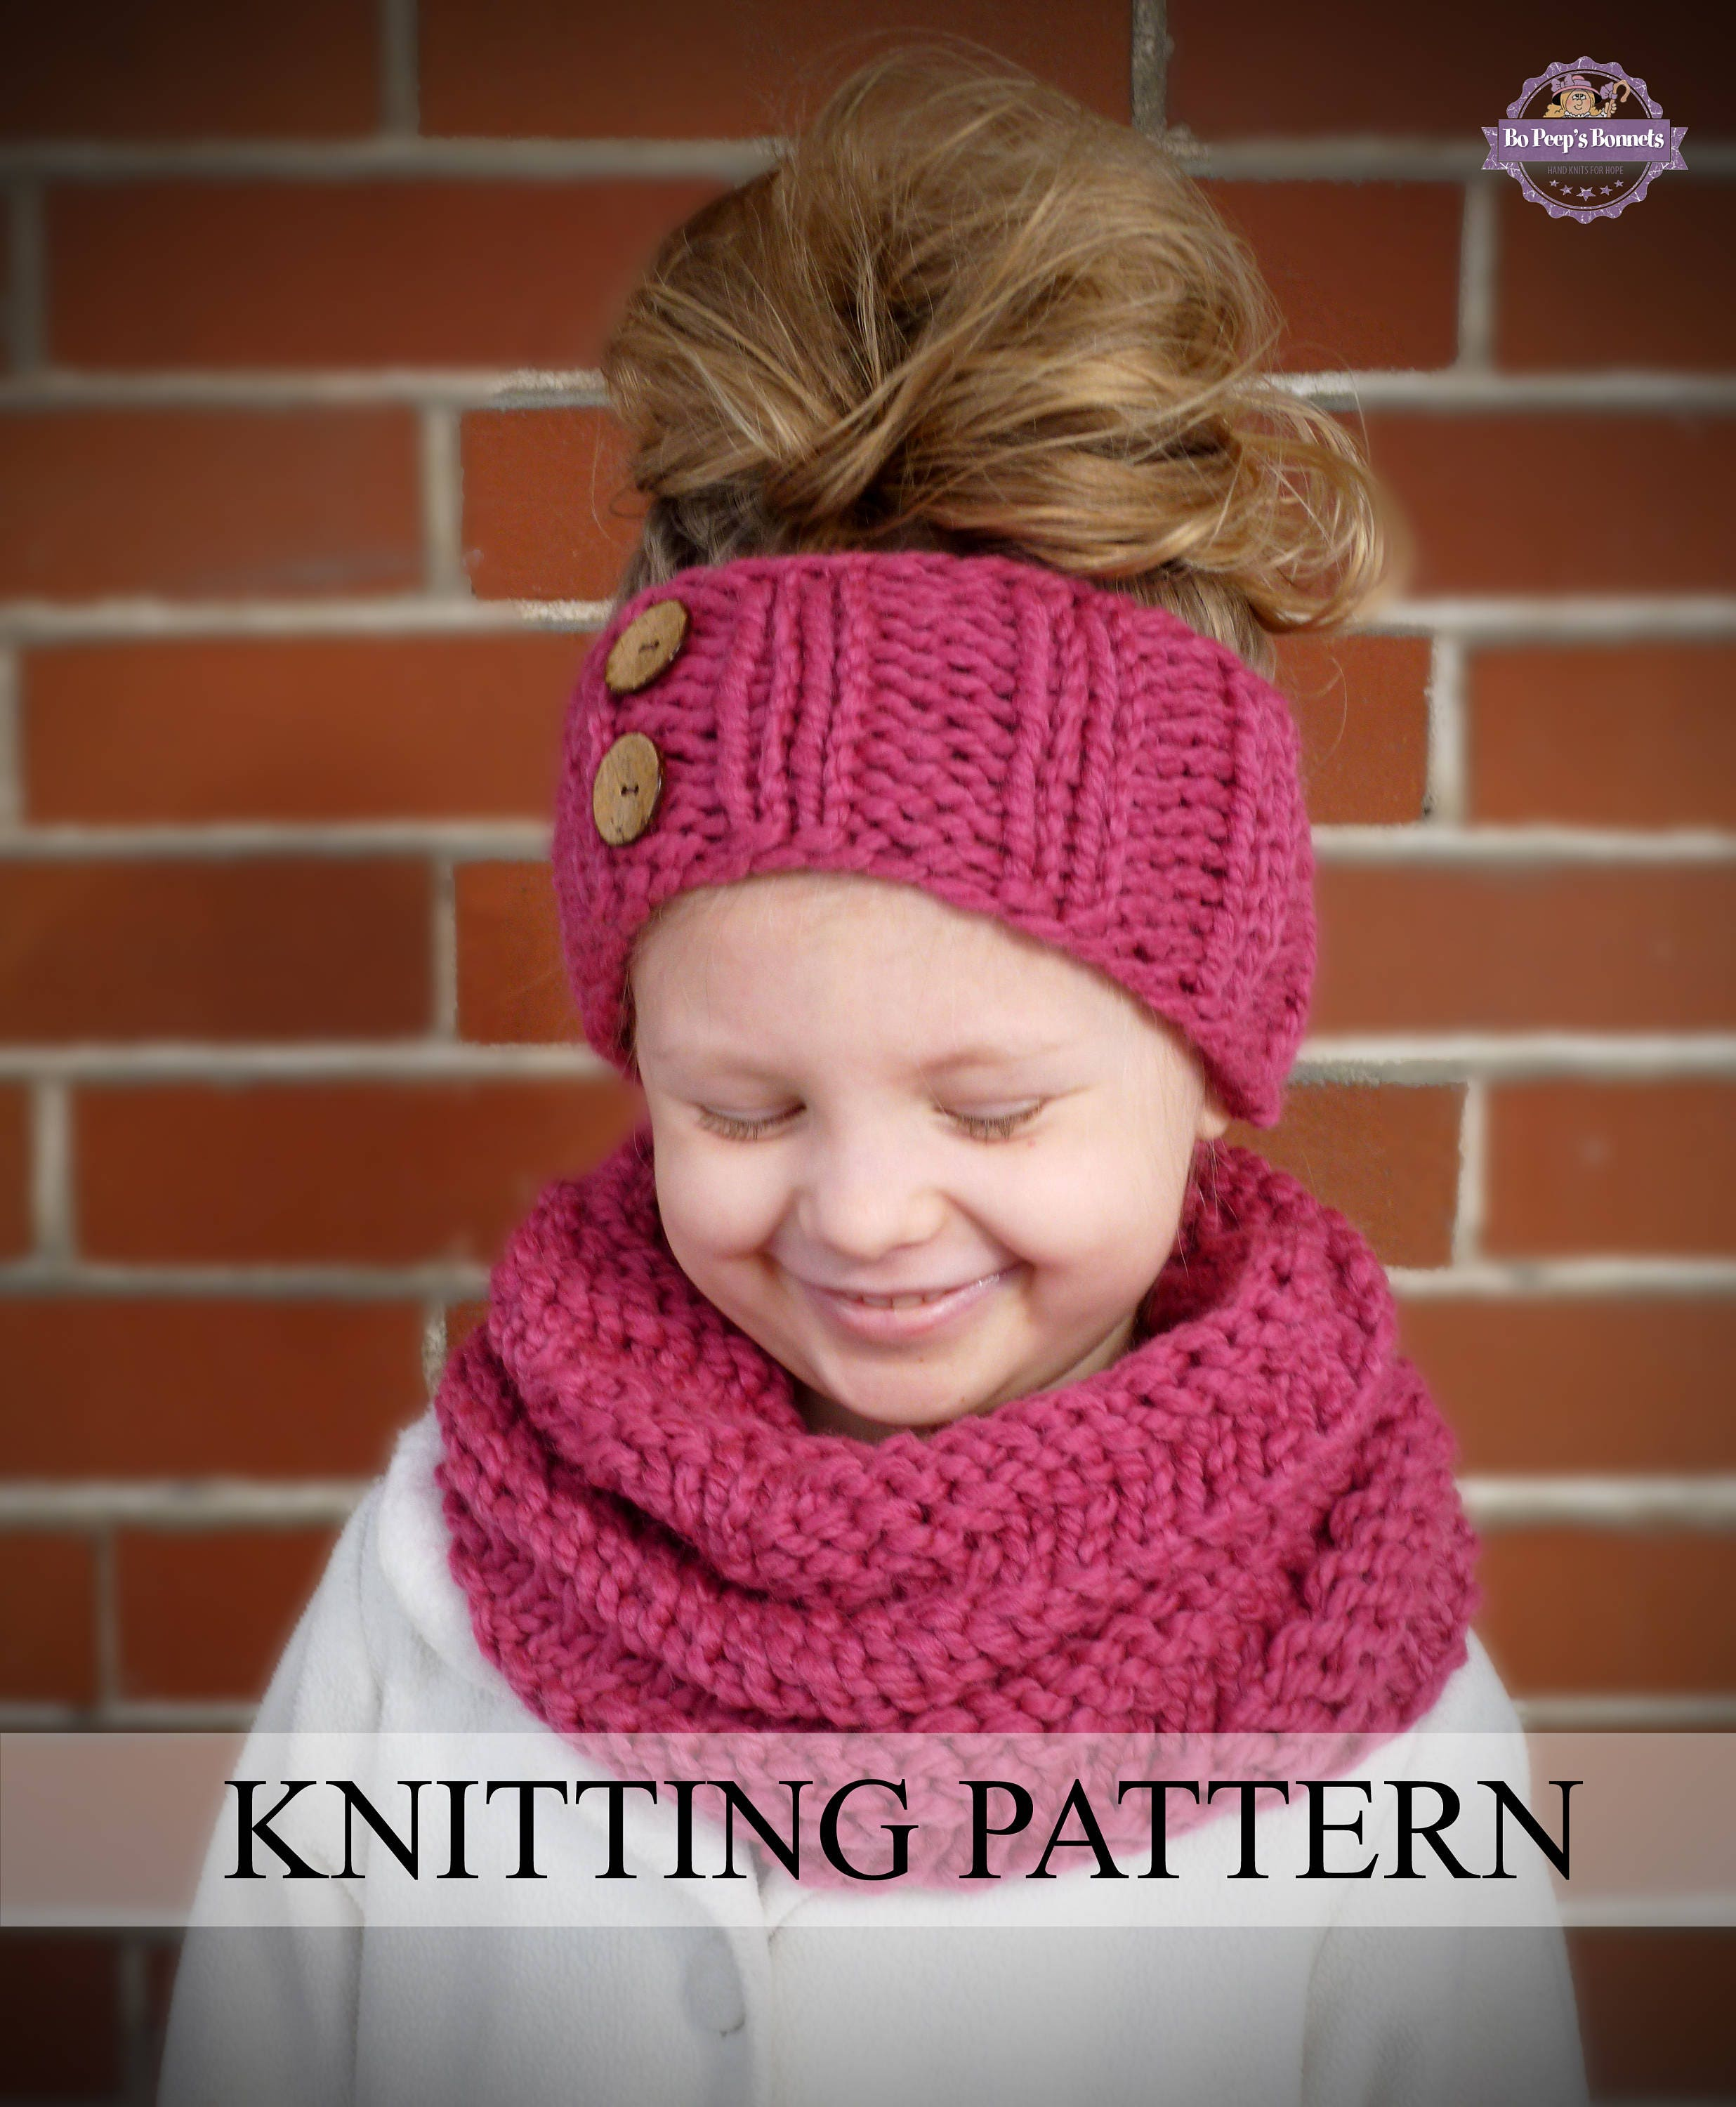 Knitting Pattern For Corkscrew Scarf : INSTANT DOWNLOAD Knitting PATTERN Spiral Cowl and Headband